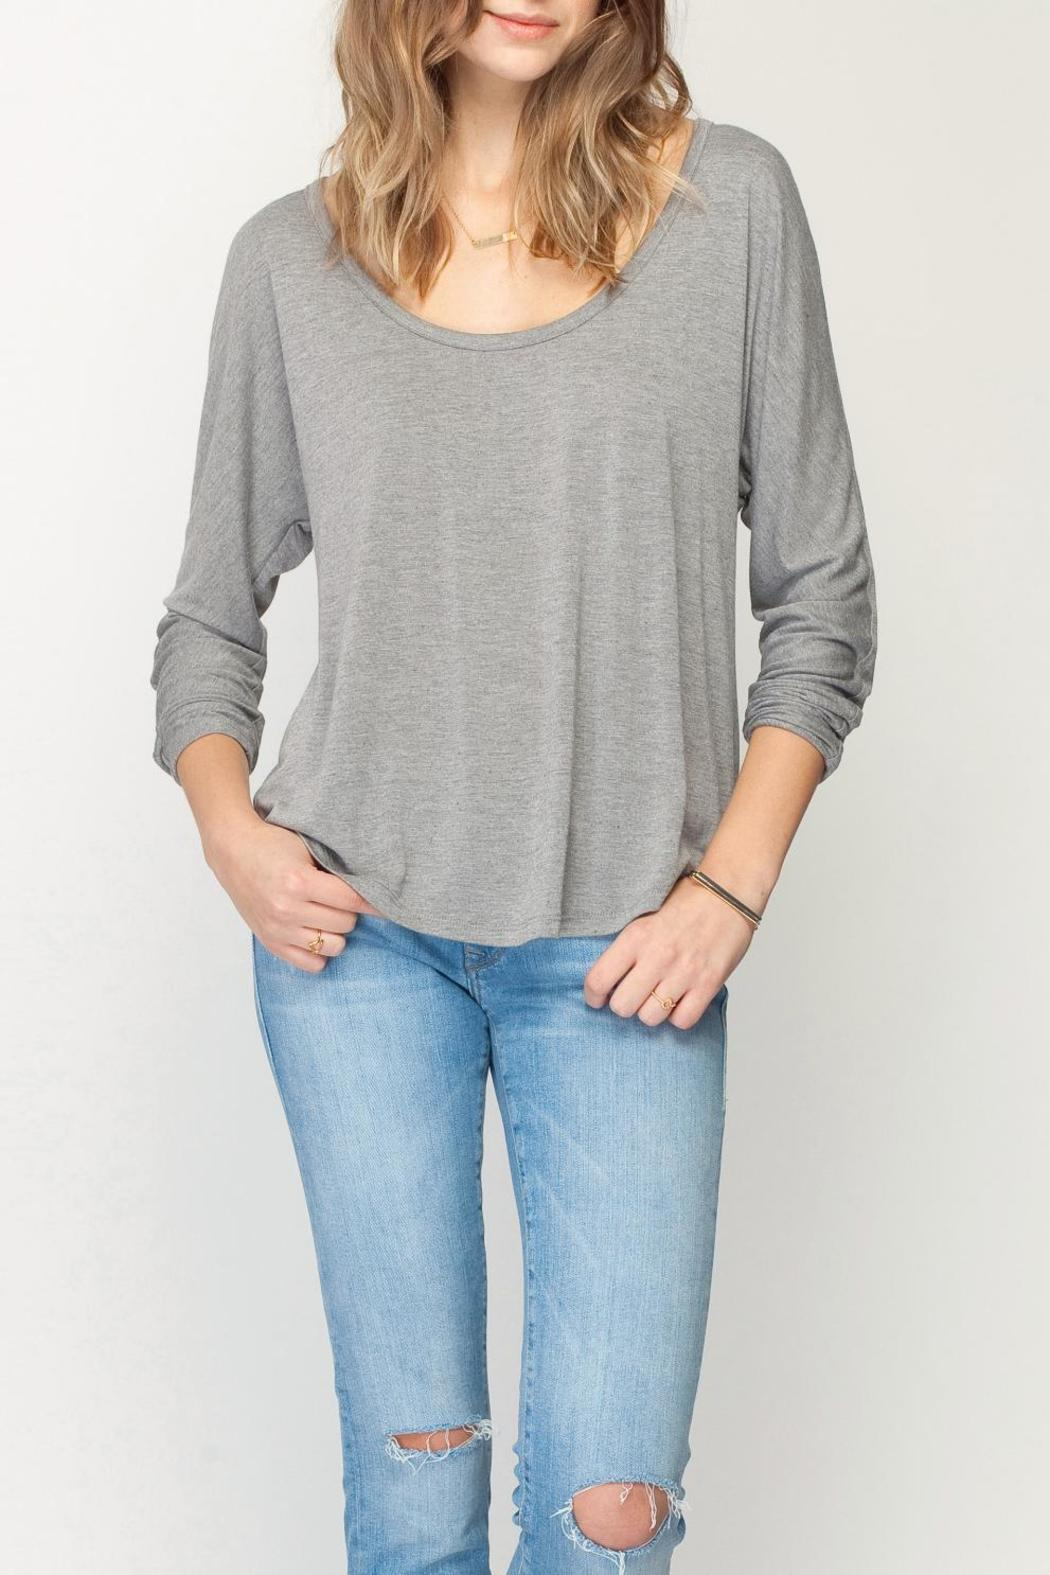 Gentle Fawn Heathered Felicity Top - Main Image